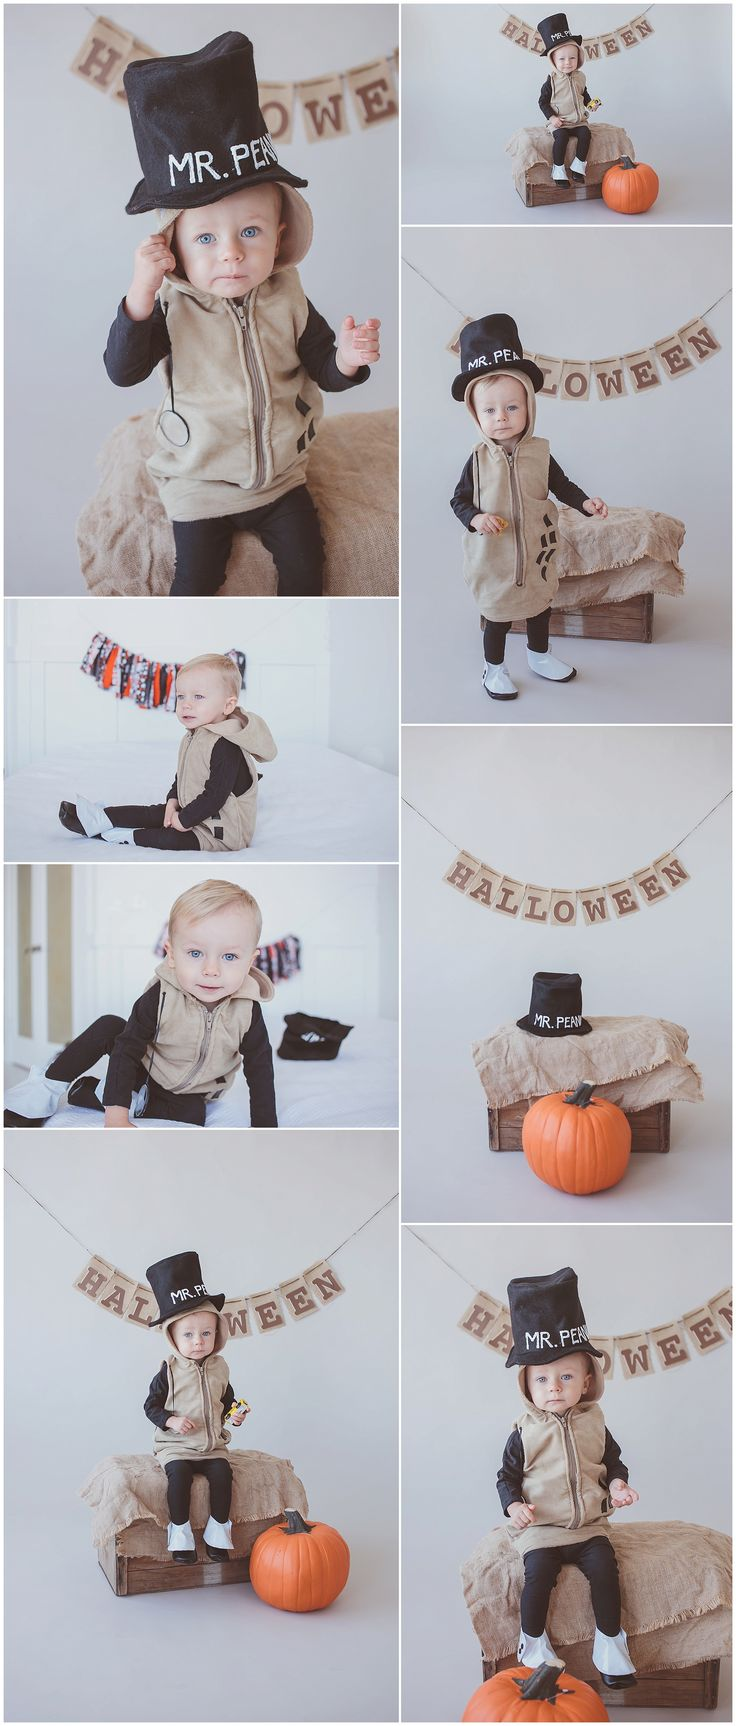 Halloween mini sessions were so so cute and super fun to do! a huge success too. Hope you love these as much as I loved working with these kids. xoxo Beka